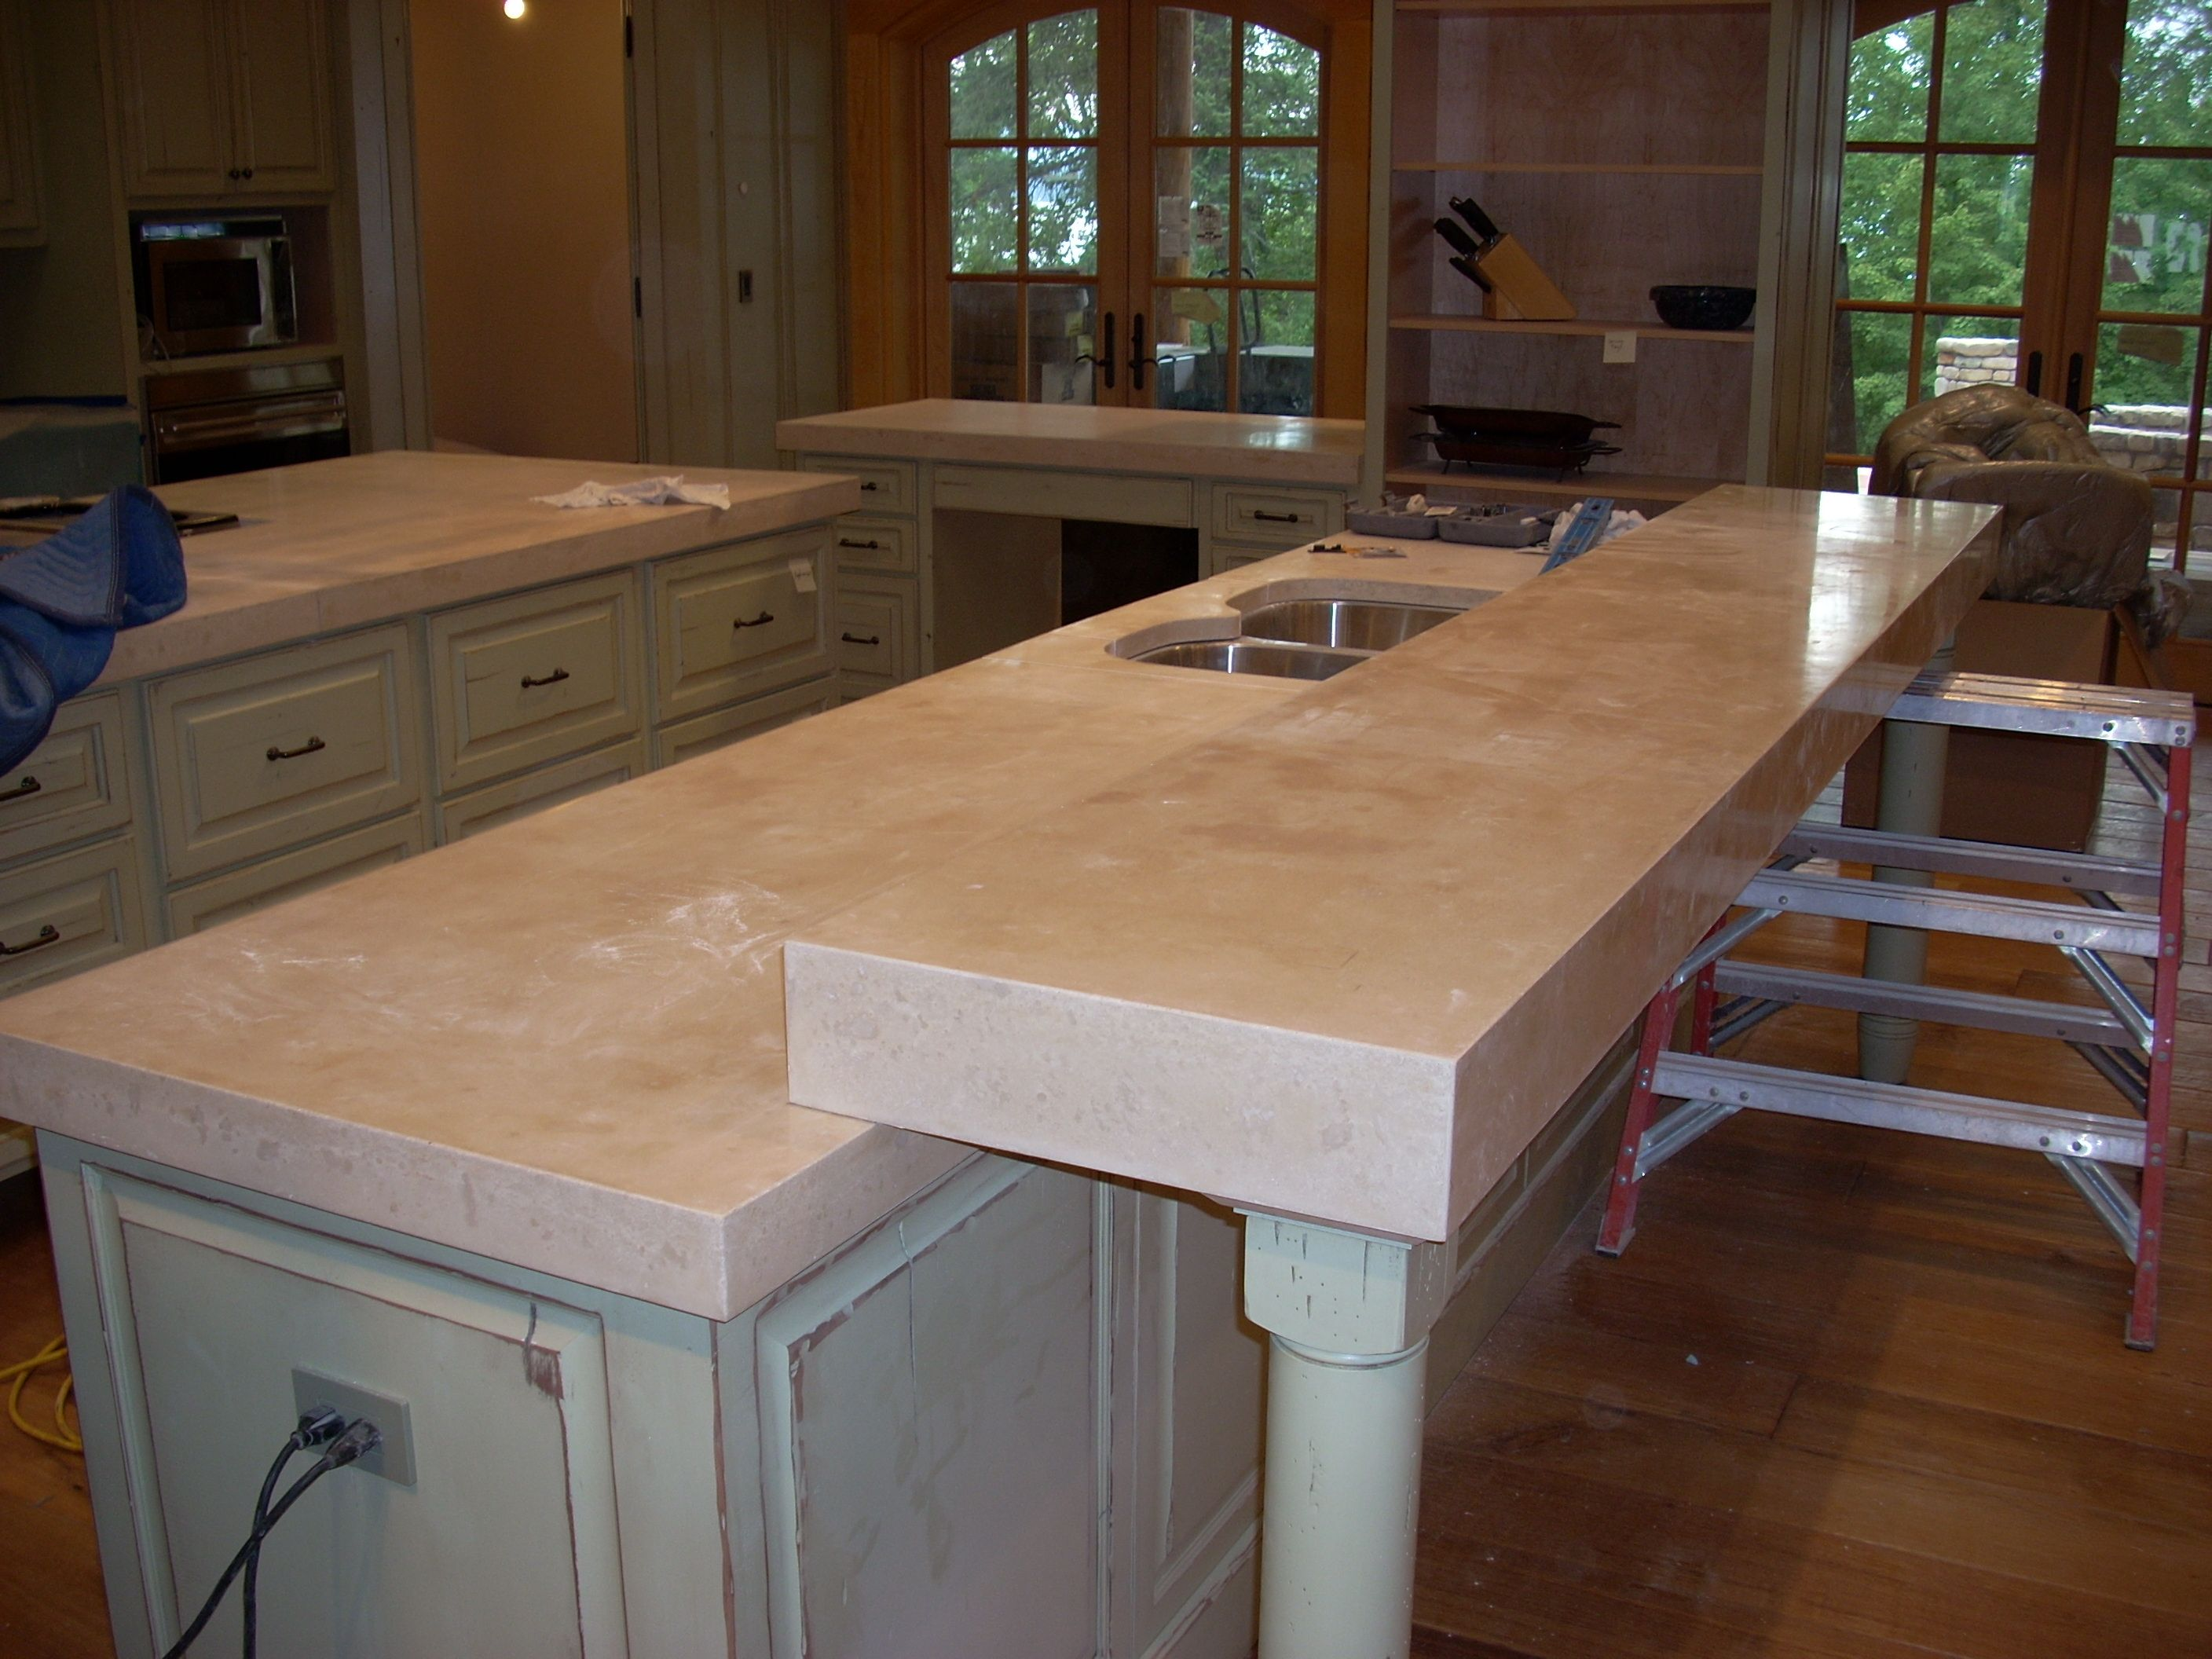 Kitchen Countertops Design Pinterest Concrete Countertops Kitchen Or Outdoor Concrete